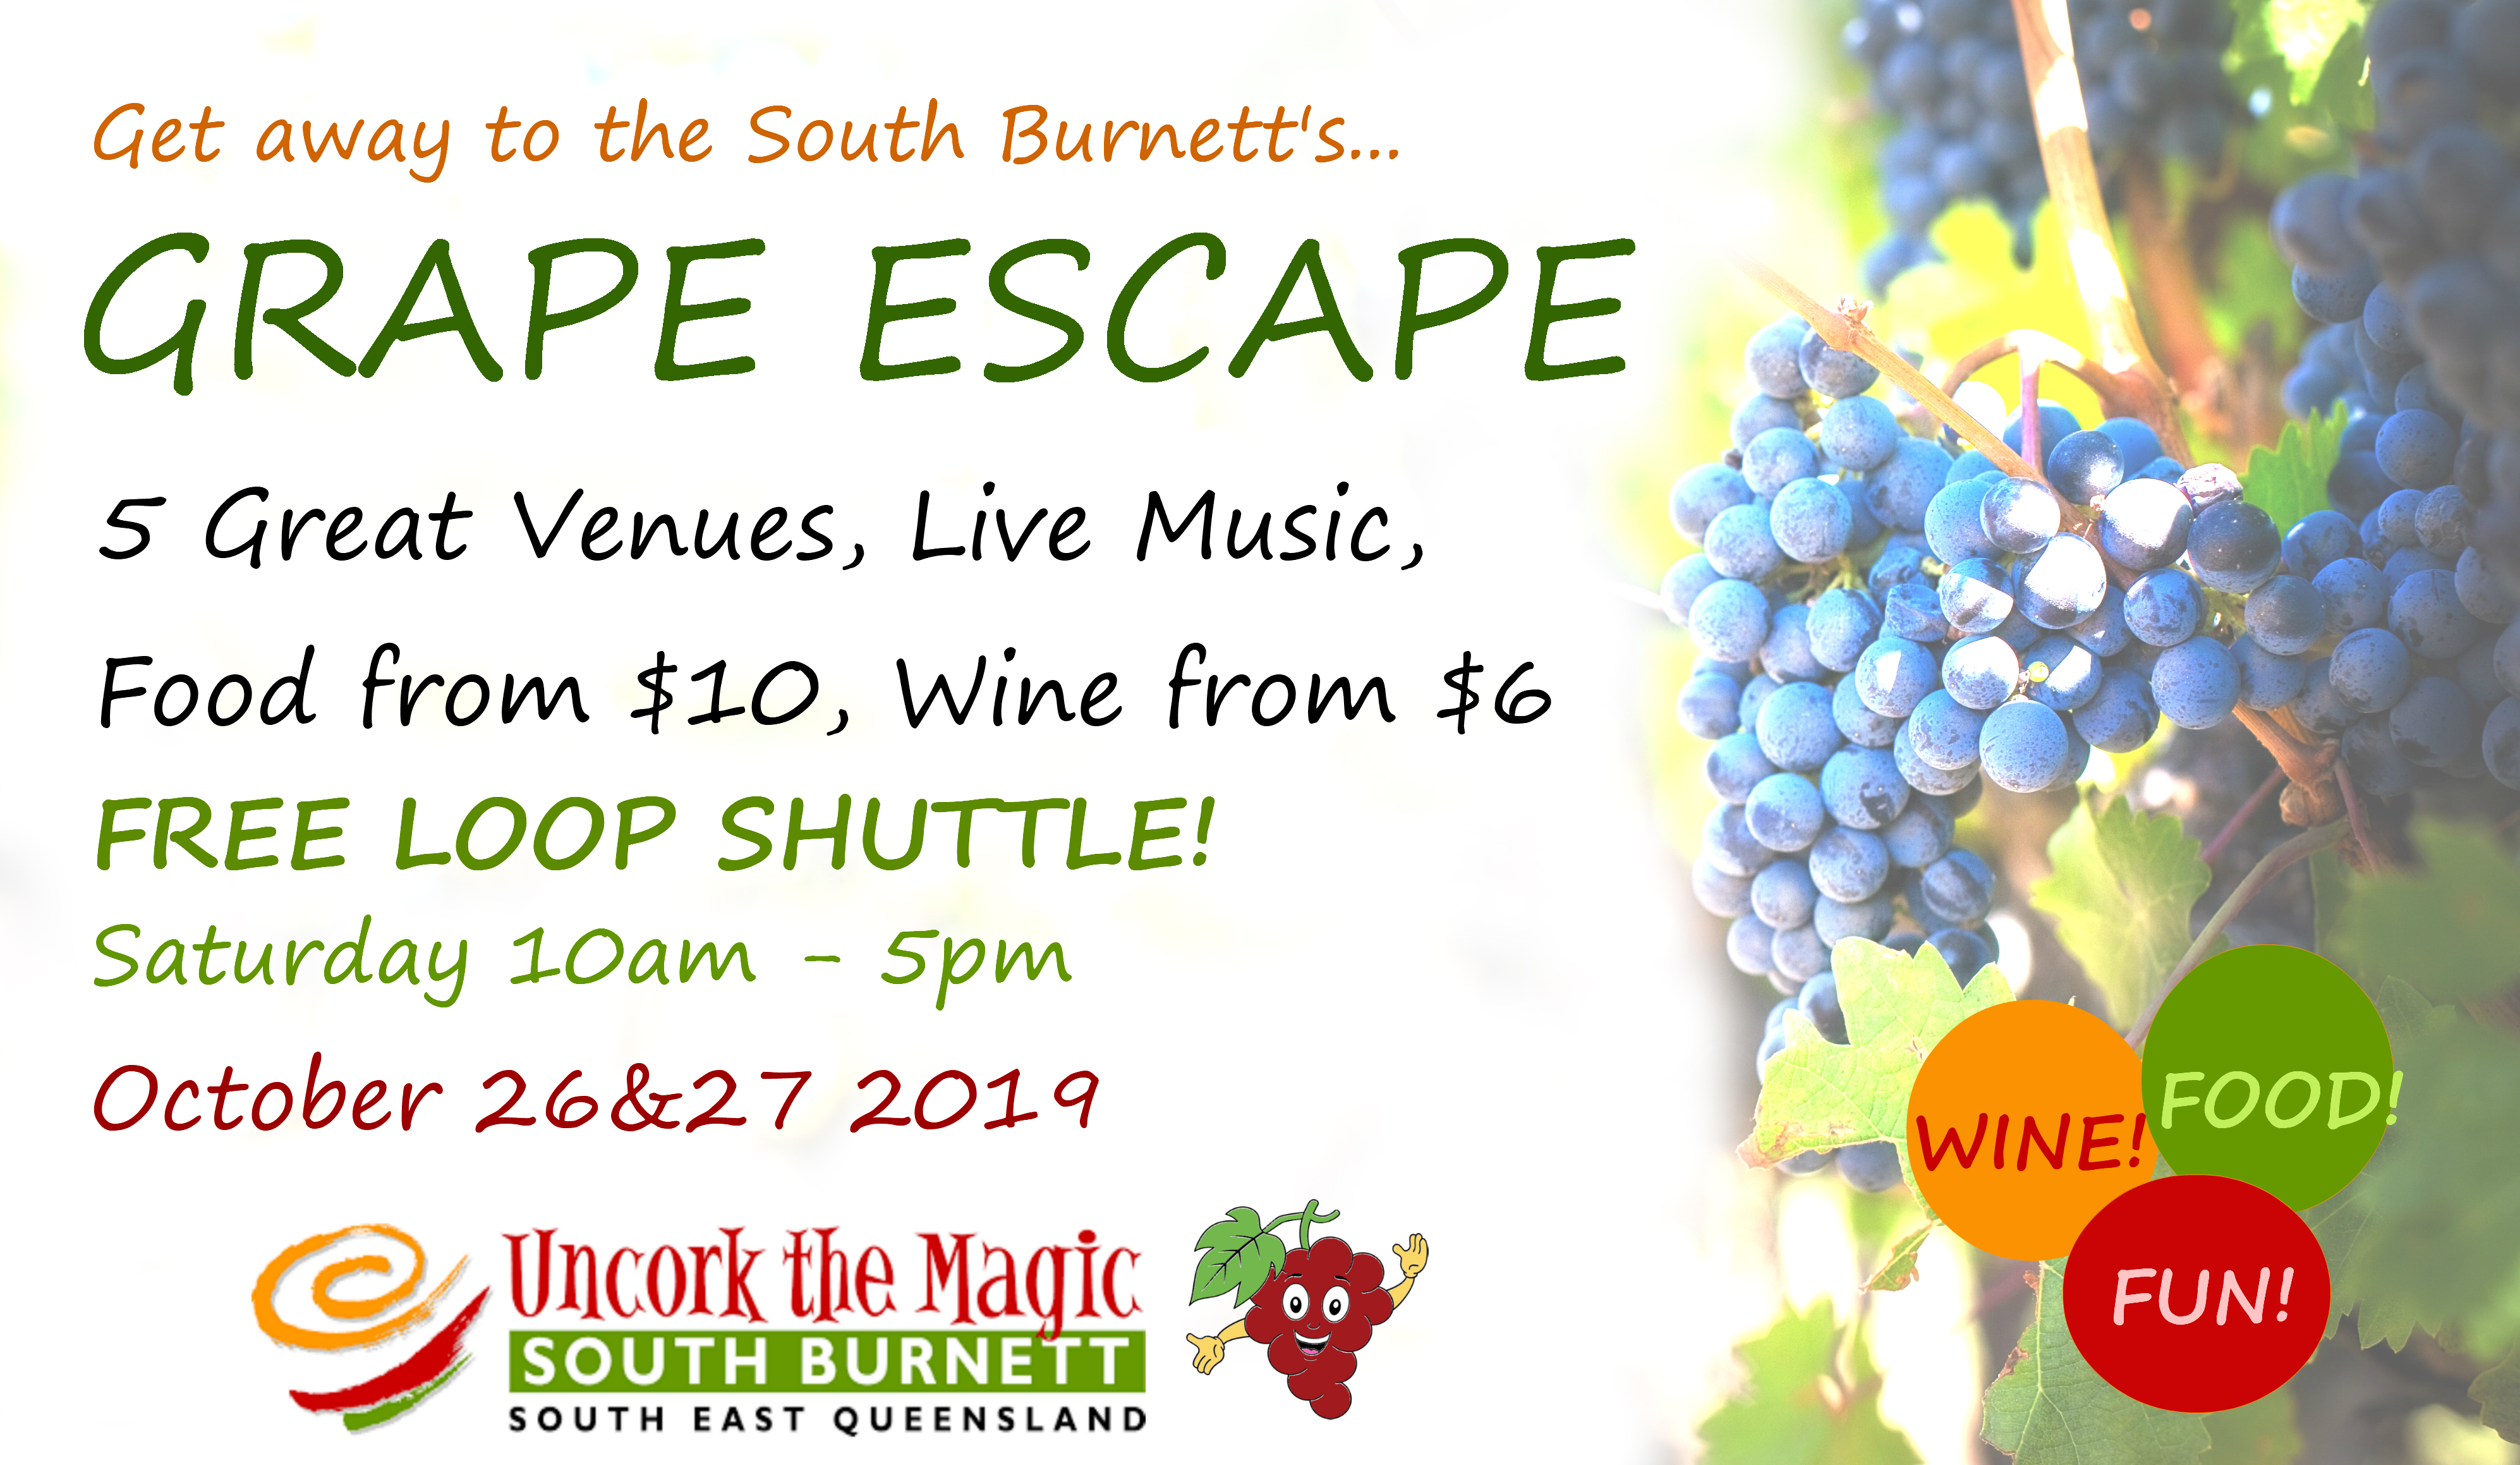 Grape Escape Qld's newest food and wine weekend